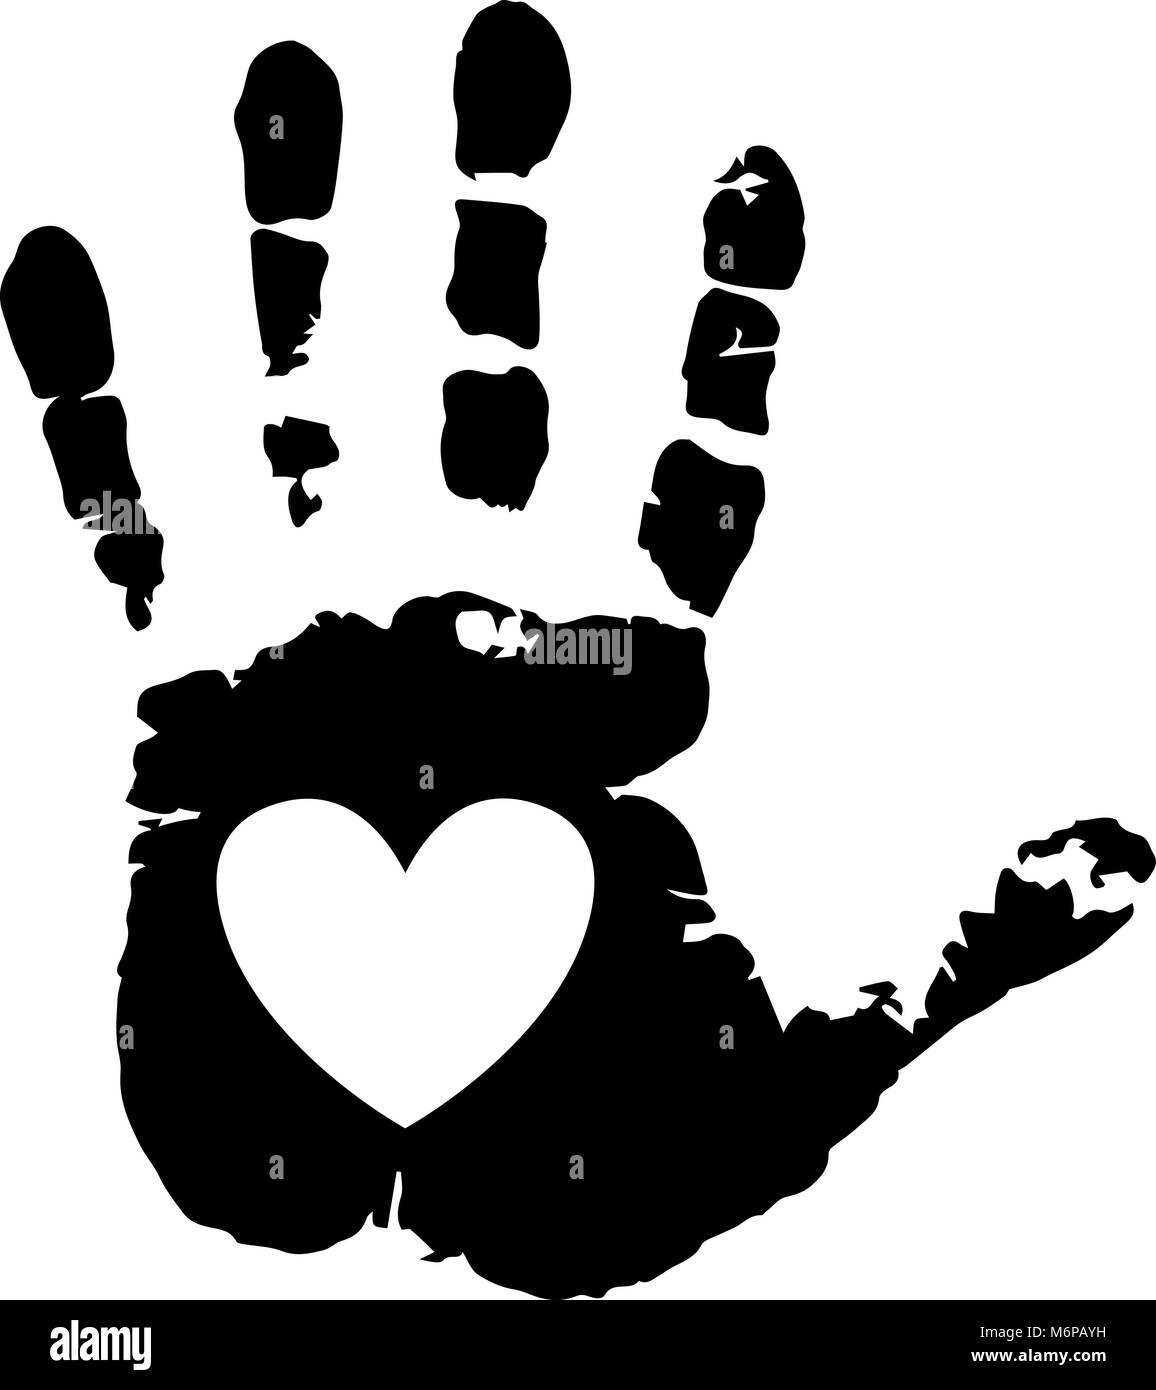 Black silhouette of human hand print with heart symbol in open black silhouette of human hand print with heart symbol in open palm isolated on white background vector monochrome illustration icon logo clip art buycottarizona Gallery